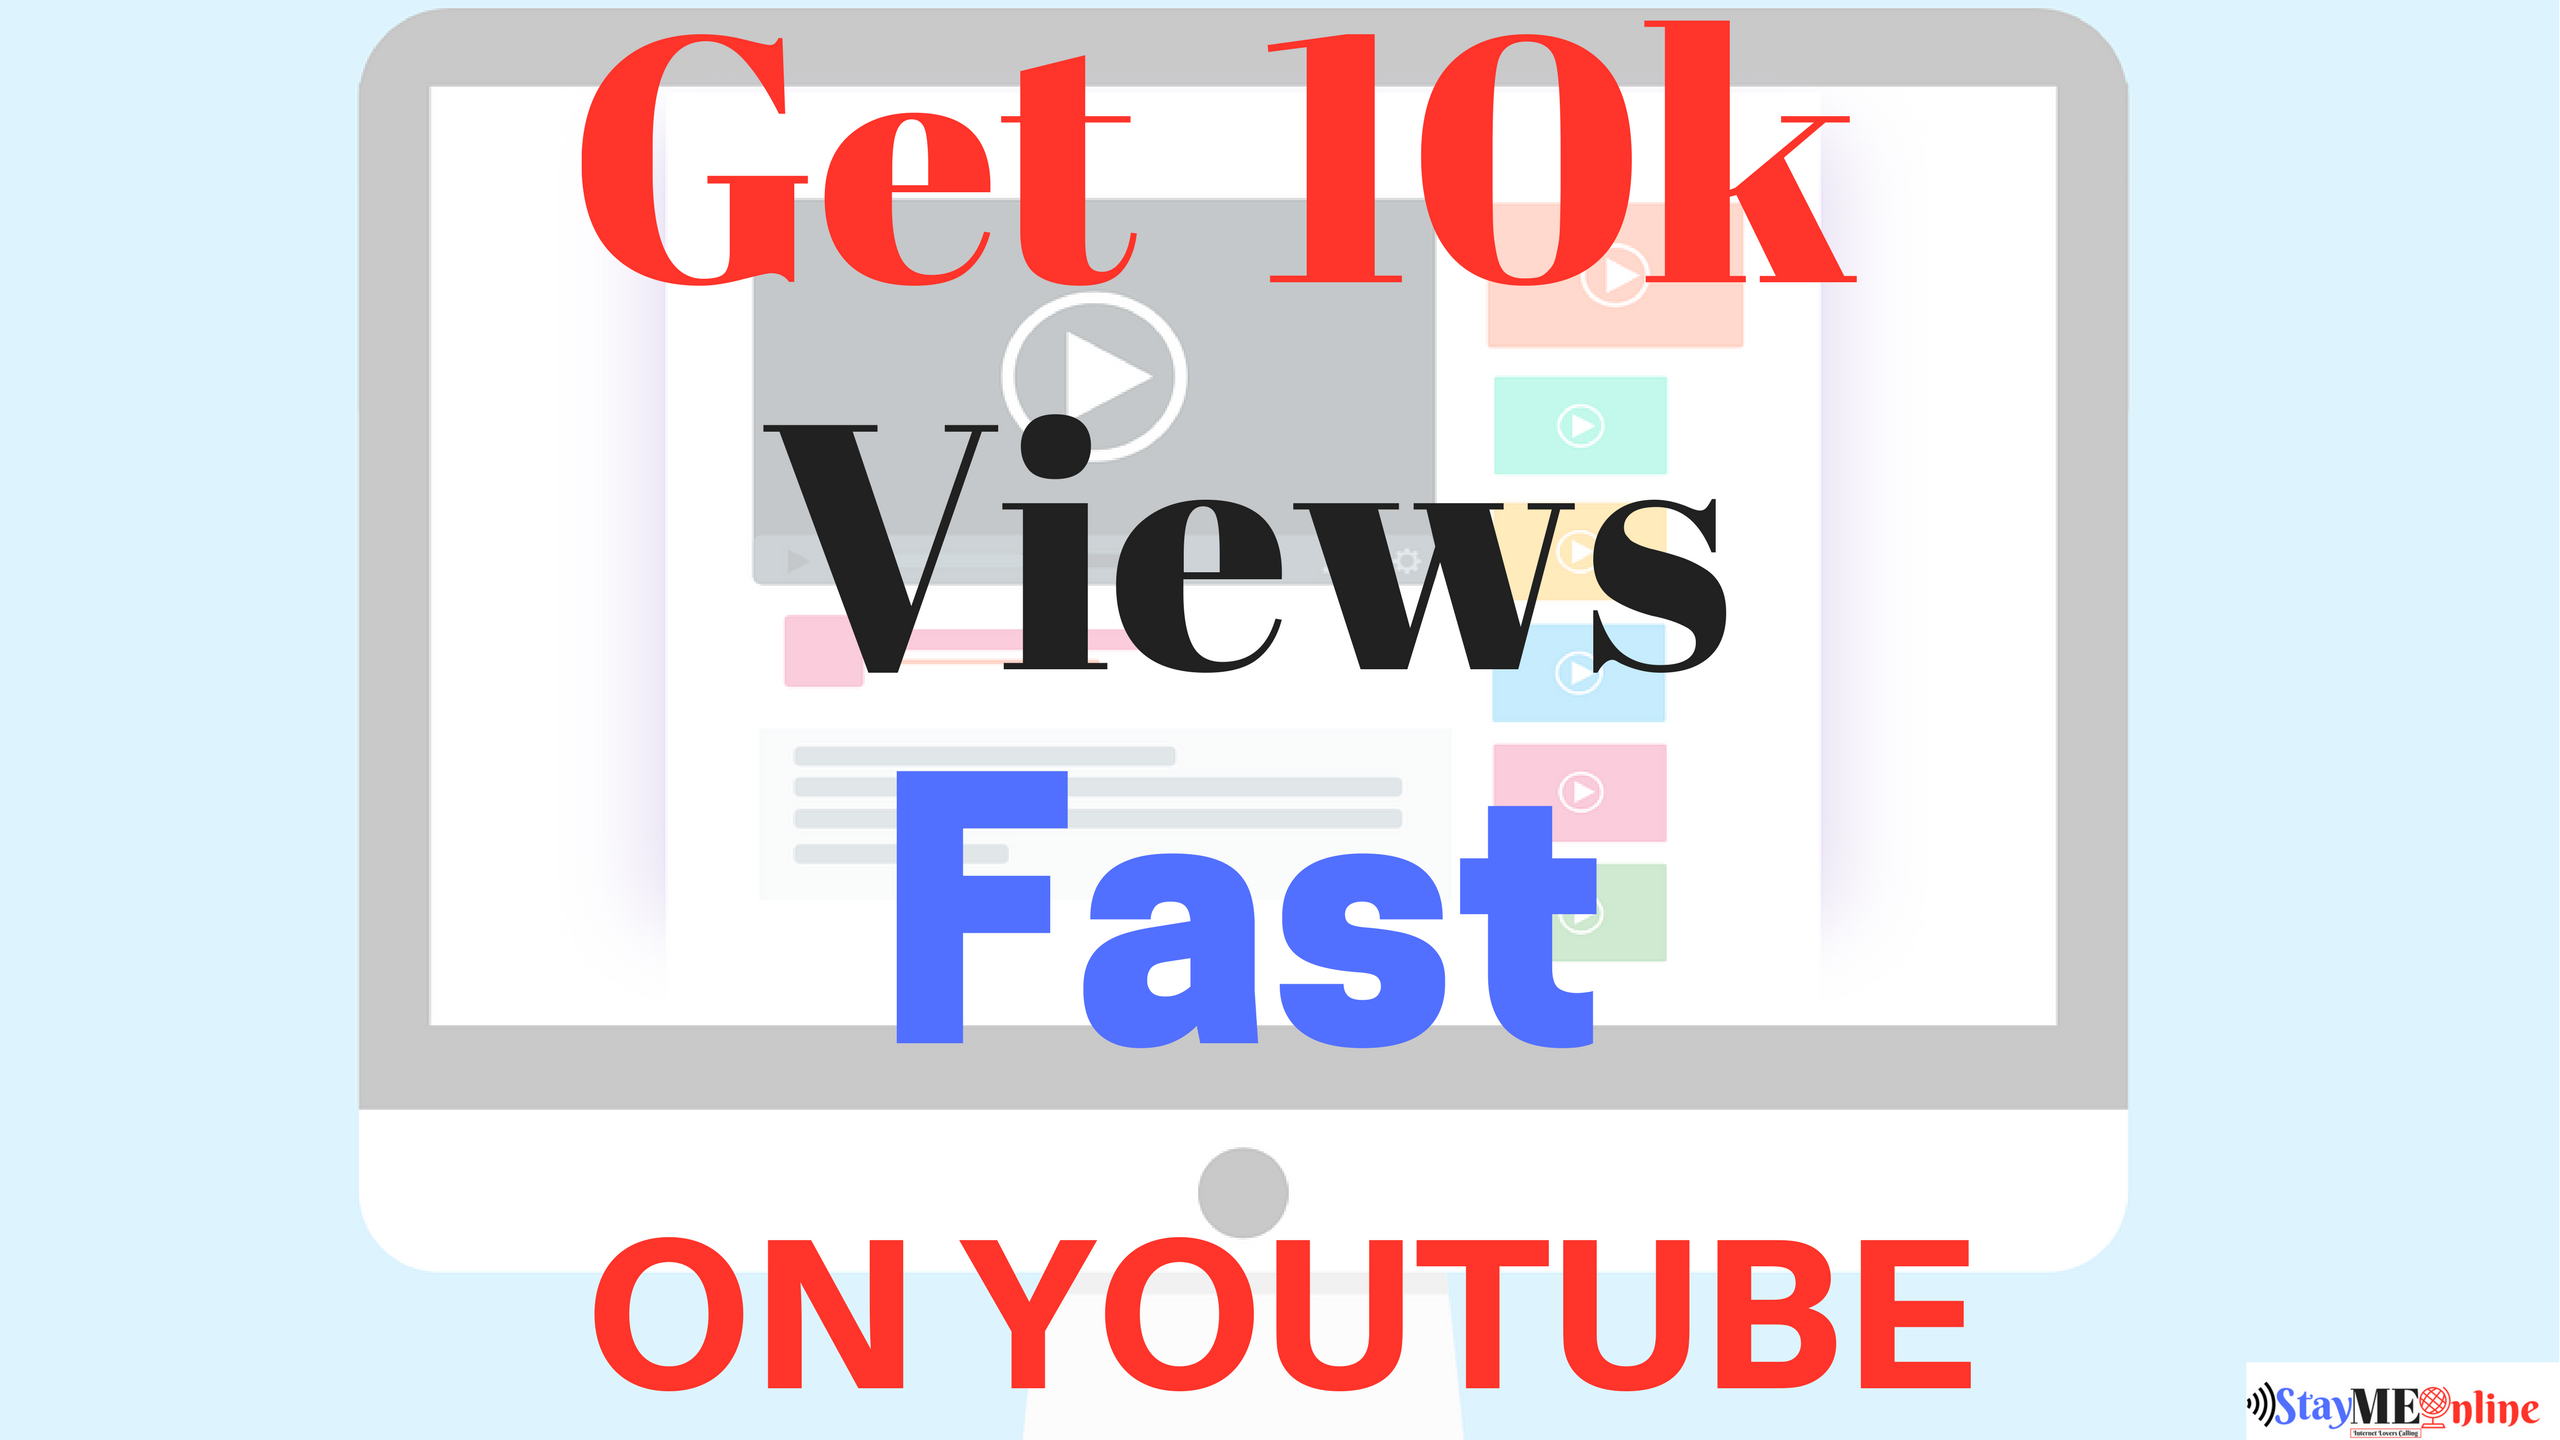 How to get 10k views fast on youtube?